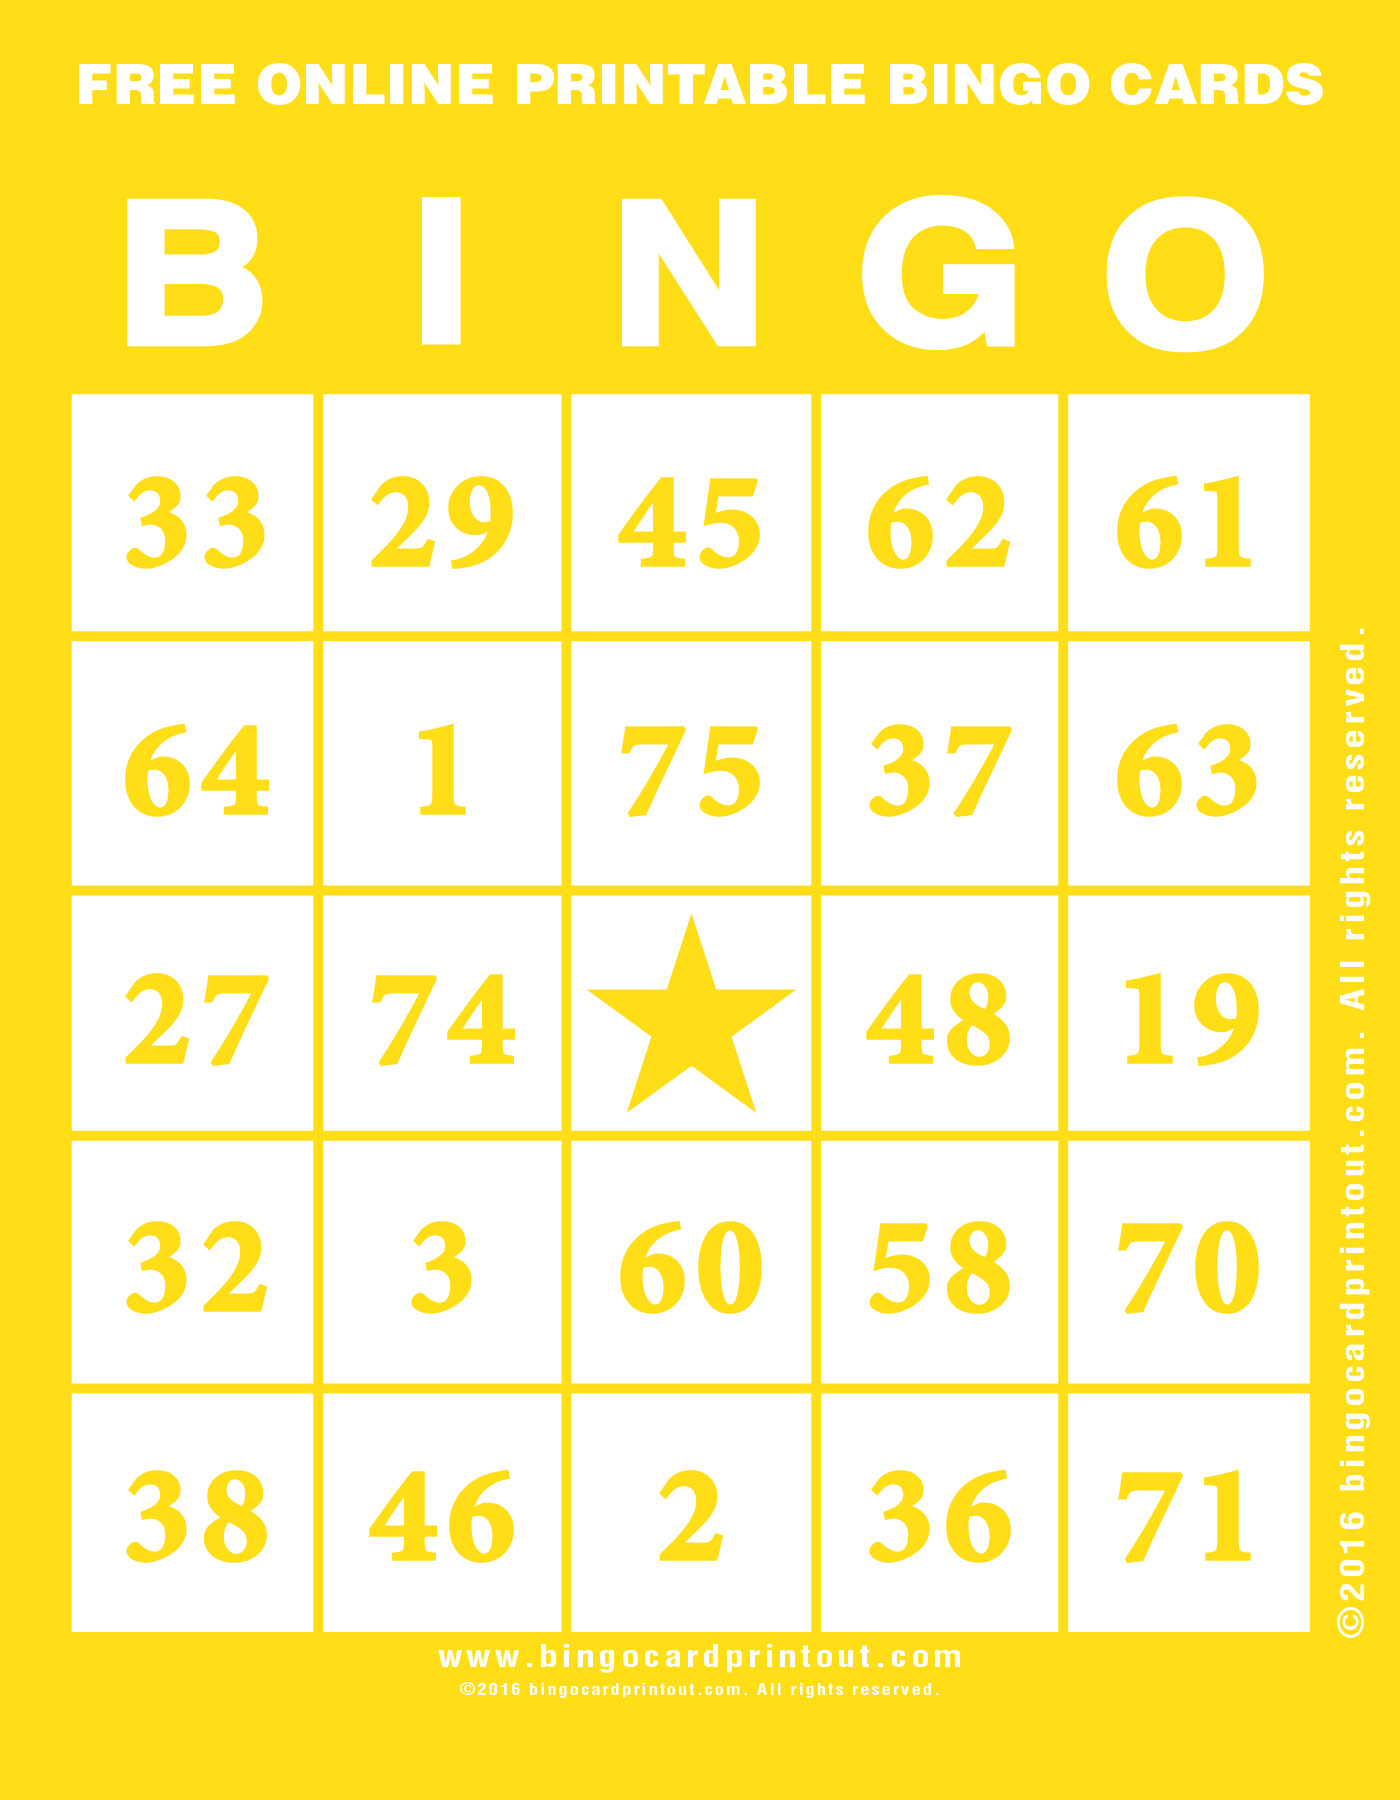 photo regarding Printable Bingo Cards 1-90 named Bingo Playing cards In the direction of Print For Free of charge With Quantities